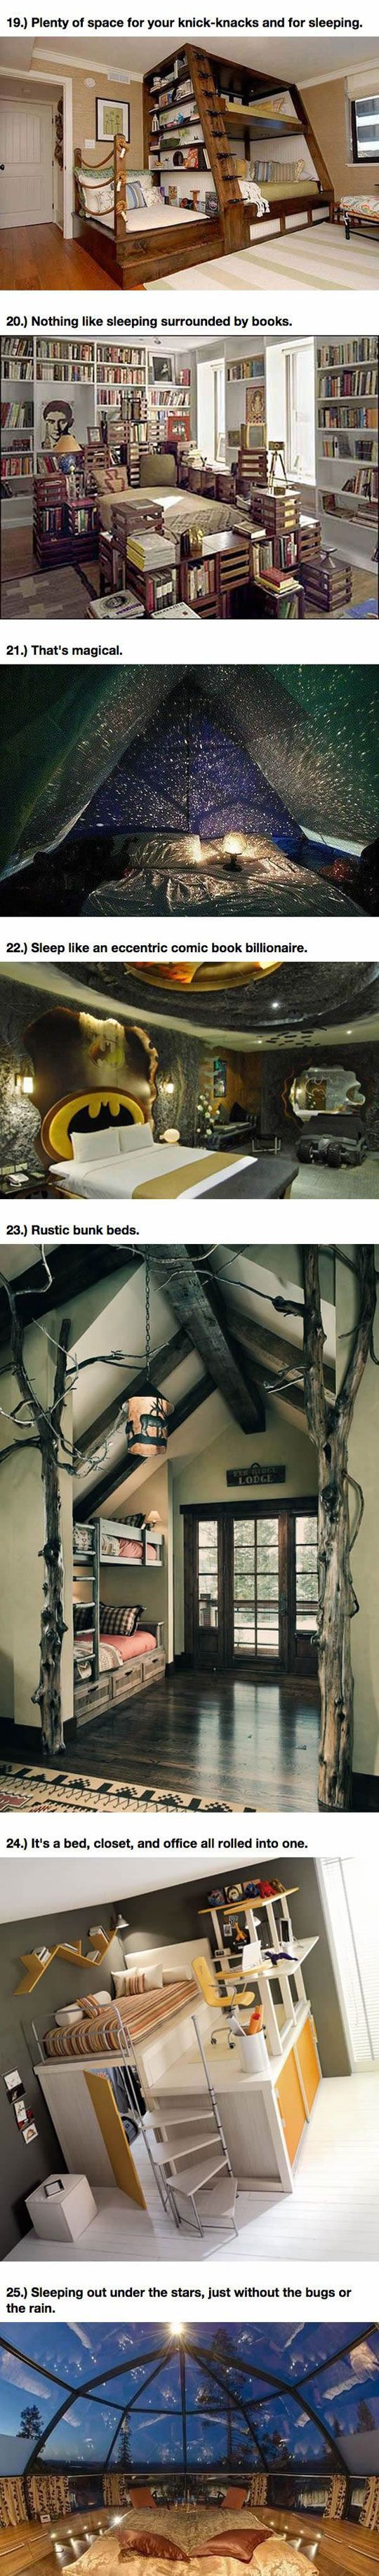 25 Amazing Beds Will Make You Wish It Was Nap Time  꿈의 집, 침대 및 도서관